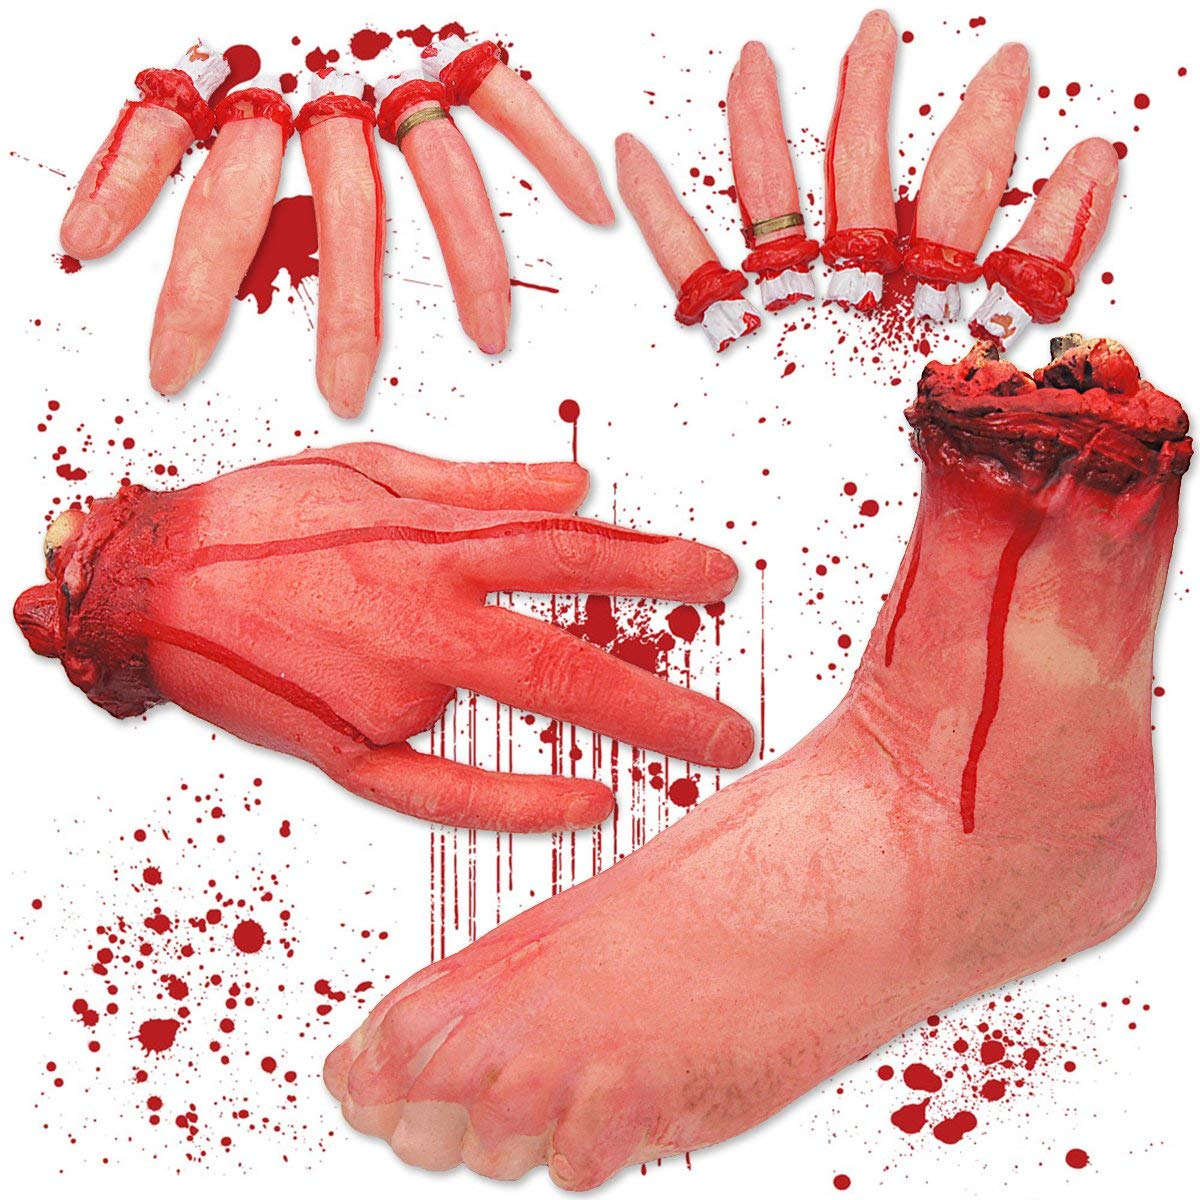 Pawliss Halloween Body Parts, Severed Fake Hand Foot Fingers, Horror Bloody Props, Haunted House Decorations